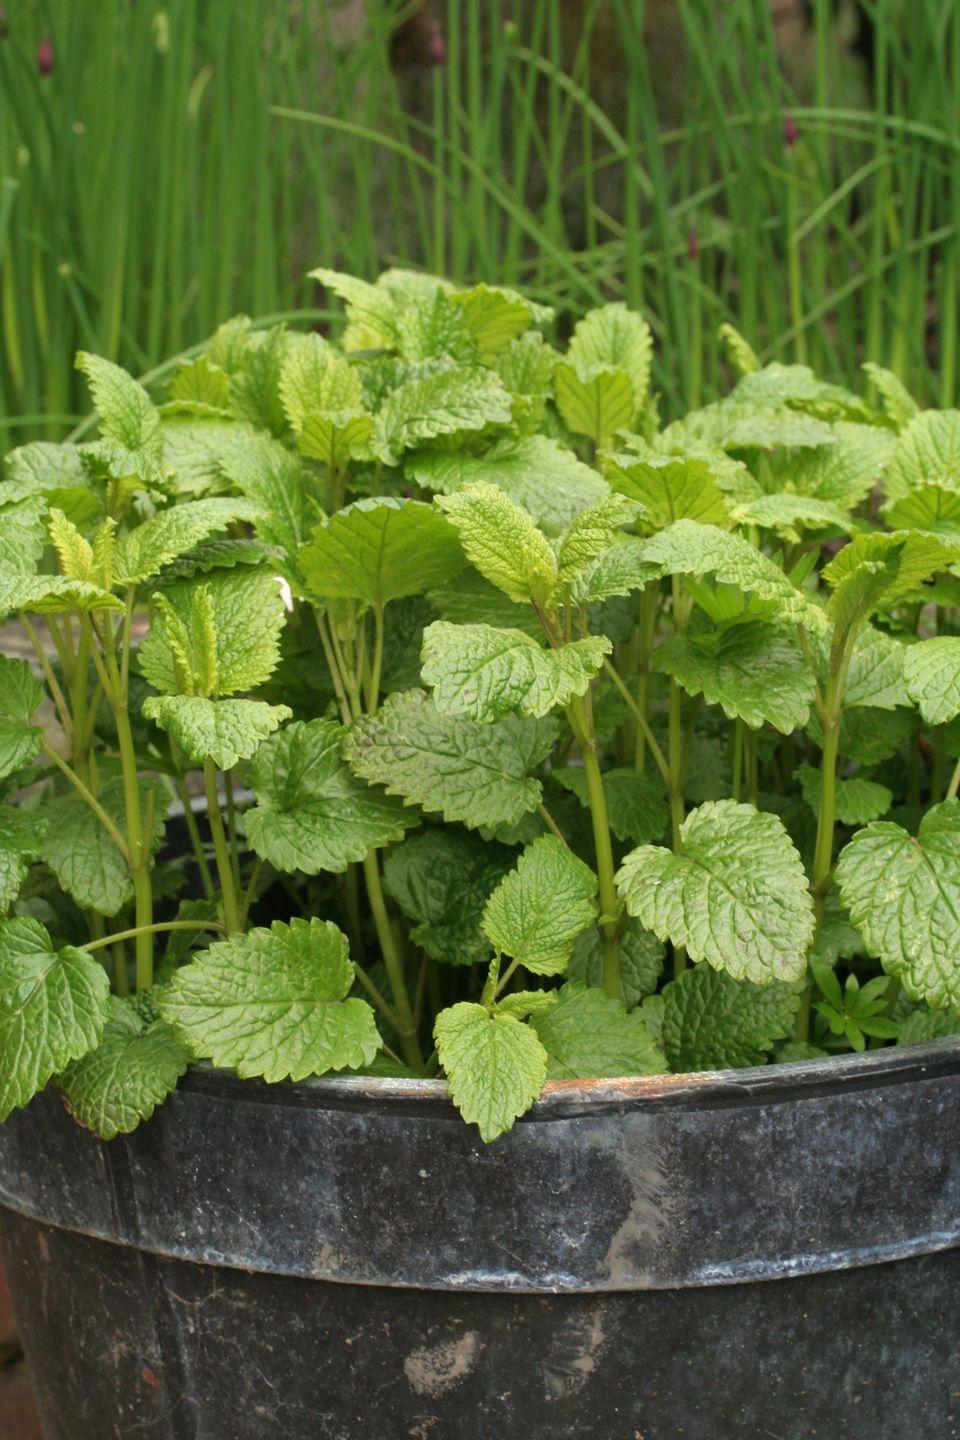 """<p>The lemon-scented mint-like leaves of this perennial herb make it a nice addition to your garden. Remove the flowers so they don't go to seed, or you may find that this plant will take over your entire garden. It's mostly used for brewing a cup of delicious tea.</p><p><a class=""""link rapid-noclick-resp"""" href=""""https://go.redirectingat.com?id=74968X1596630&url=https%3A%2F%2Fwww.edenbrothers.com%2Fstore%2Flemon_balm_seeds.html&sref=https%3A%2F%2Fwww.thepioneerwoman.com%2Fhome-lifestyle%2Fgardening%2Fg36533467%2Fbest-perennial-herbs%2F"""" rel=""""nofollow noopener"""" target=""""_blank"""" data-ylk=""""slk:SHOP NOW"""">SHOP NOW</a></p>"""